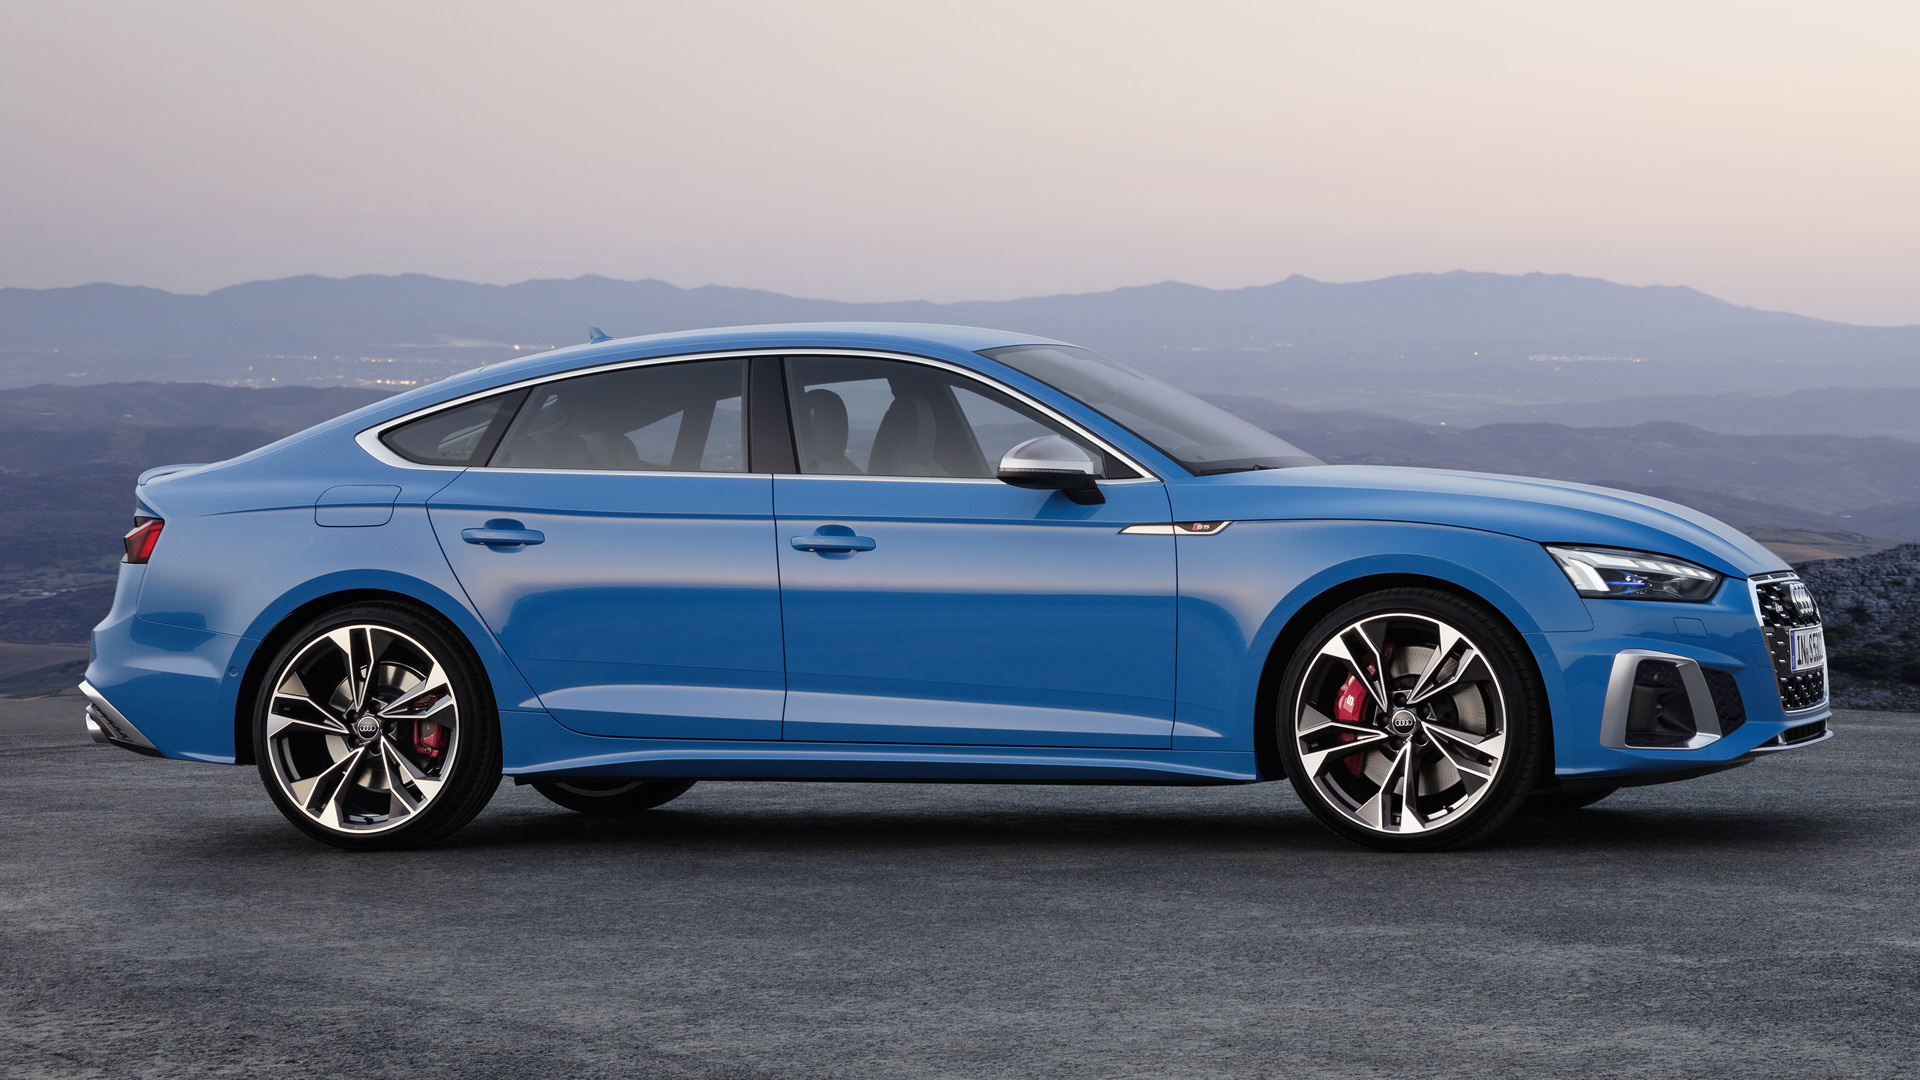 Audi A5 Coupe >> 2020 Audi S5 Sportback - Wallpapers and HD Images | Car Pixel